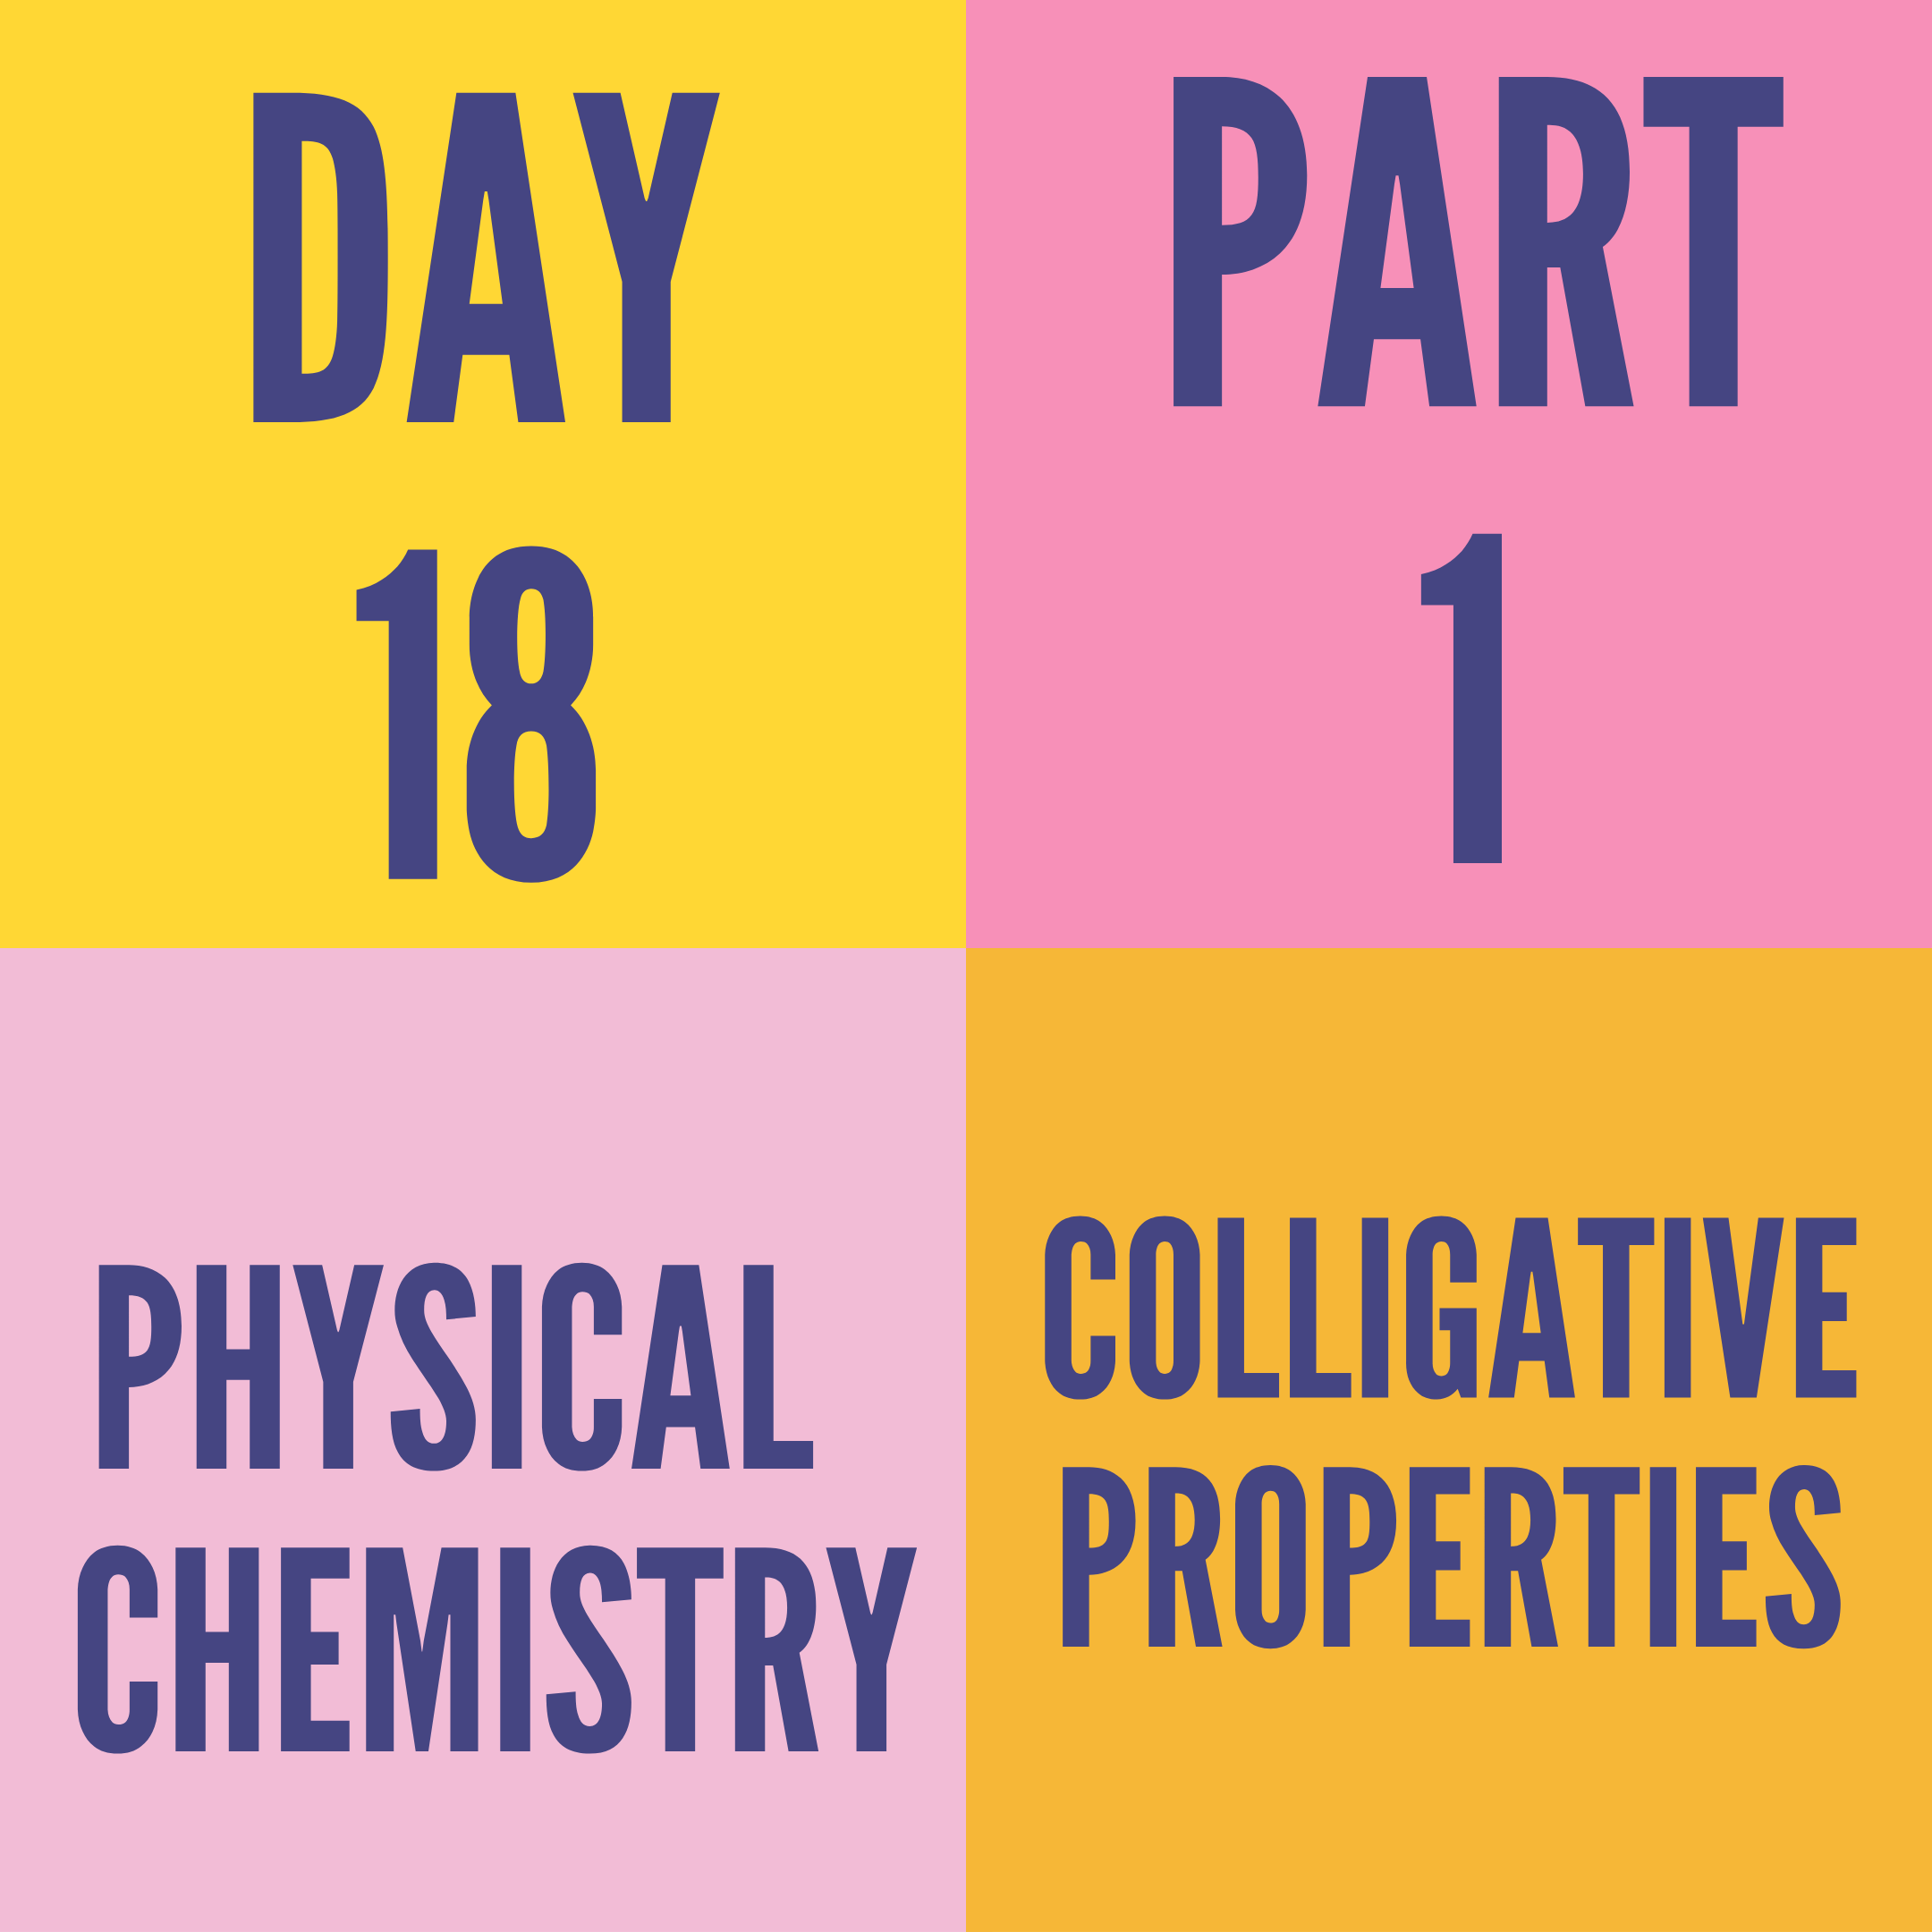 DAY-18 PART-1 COLLIGATIVE PROPERTIES